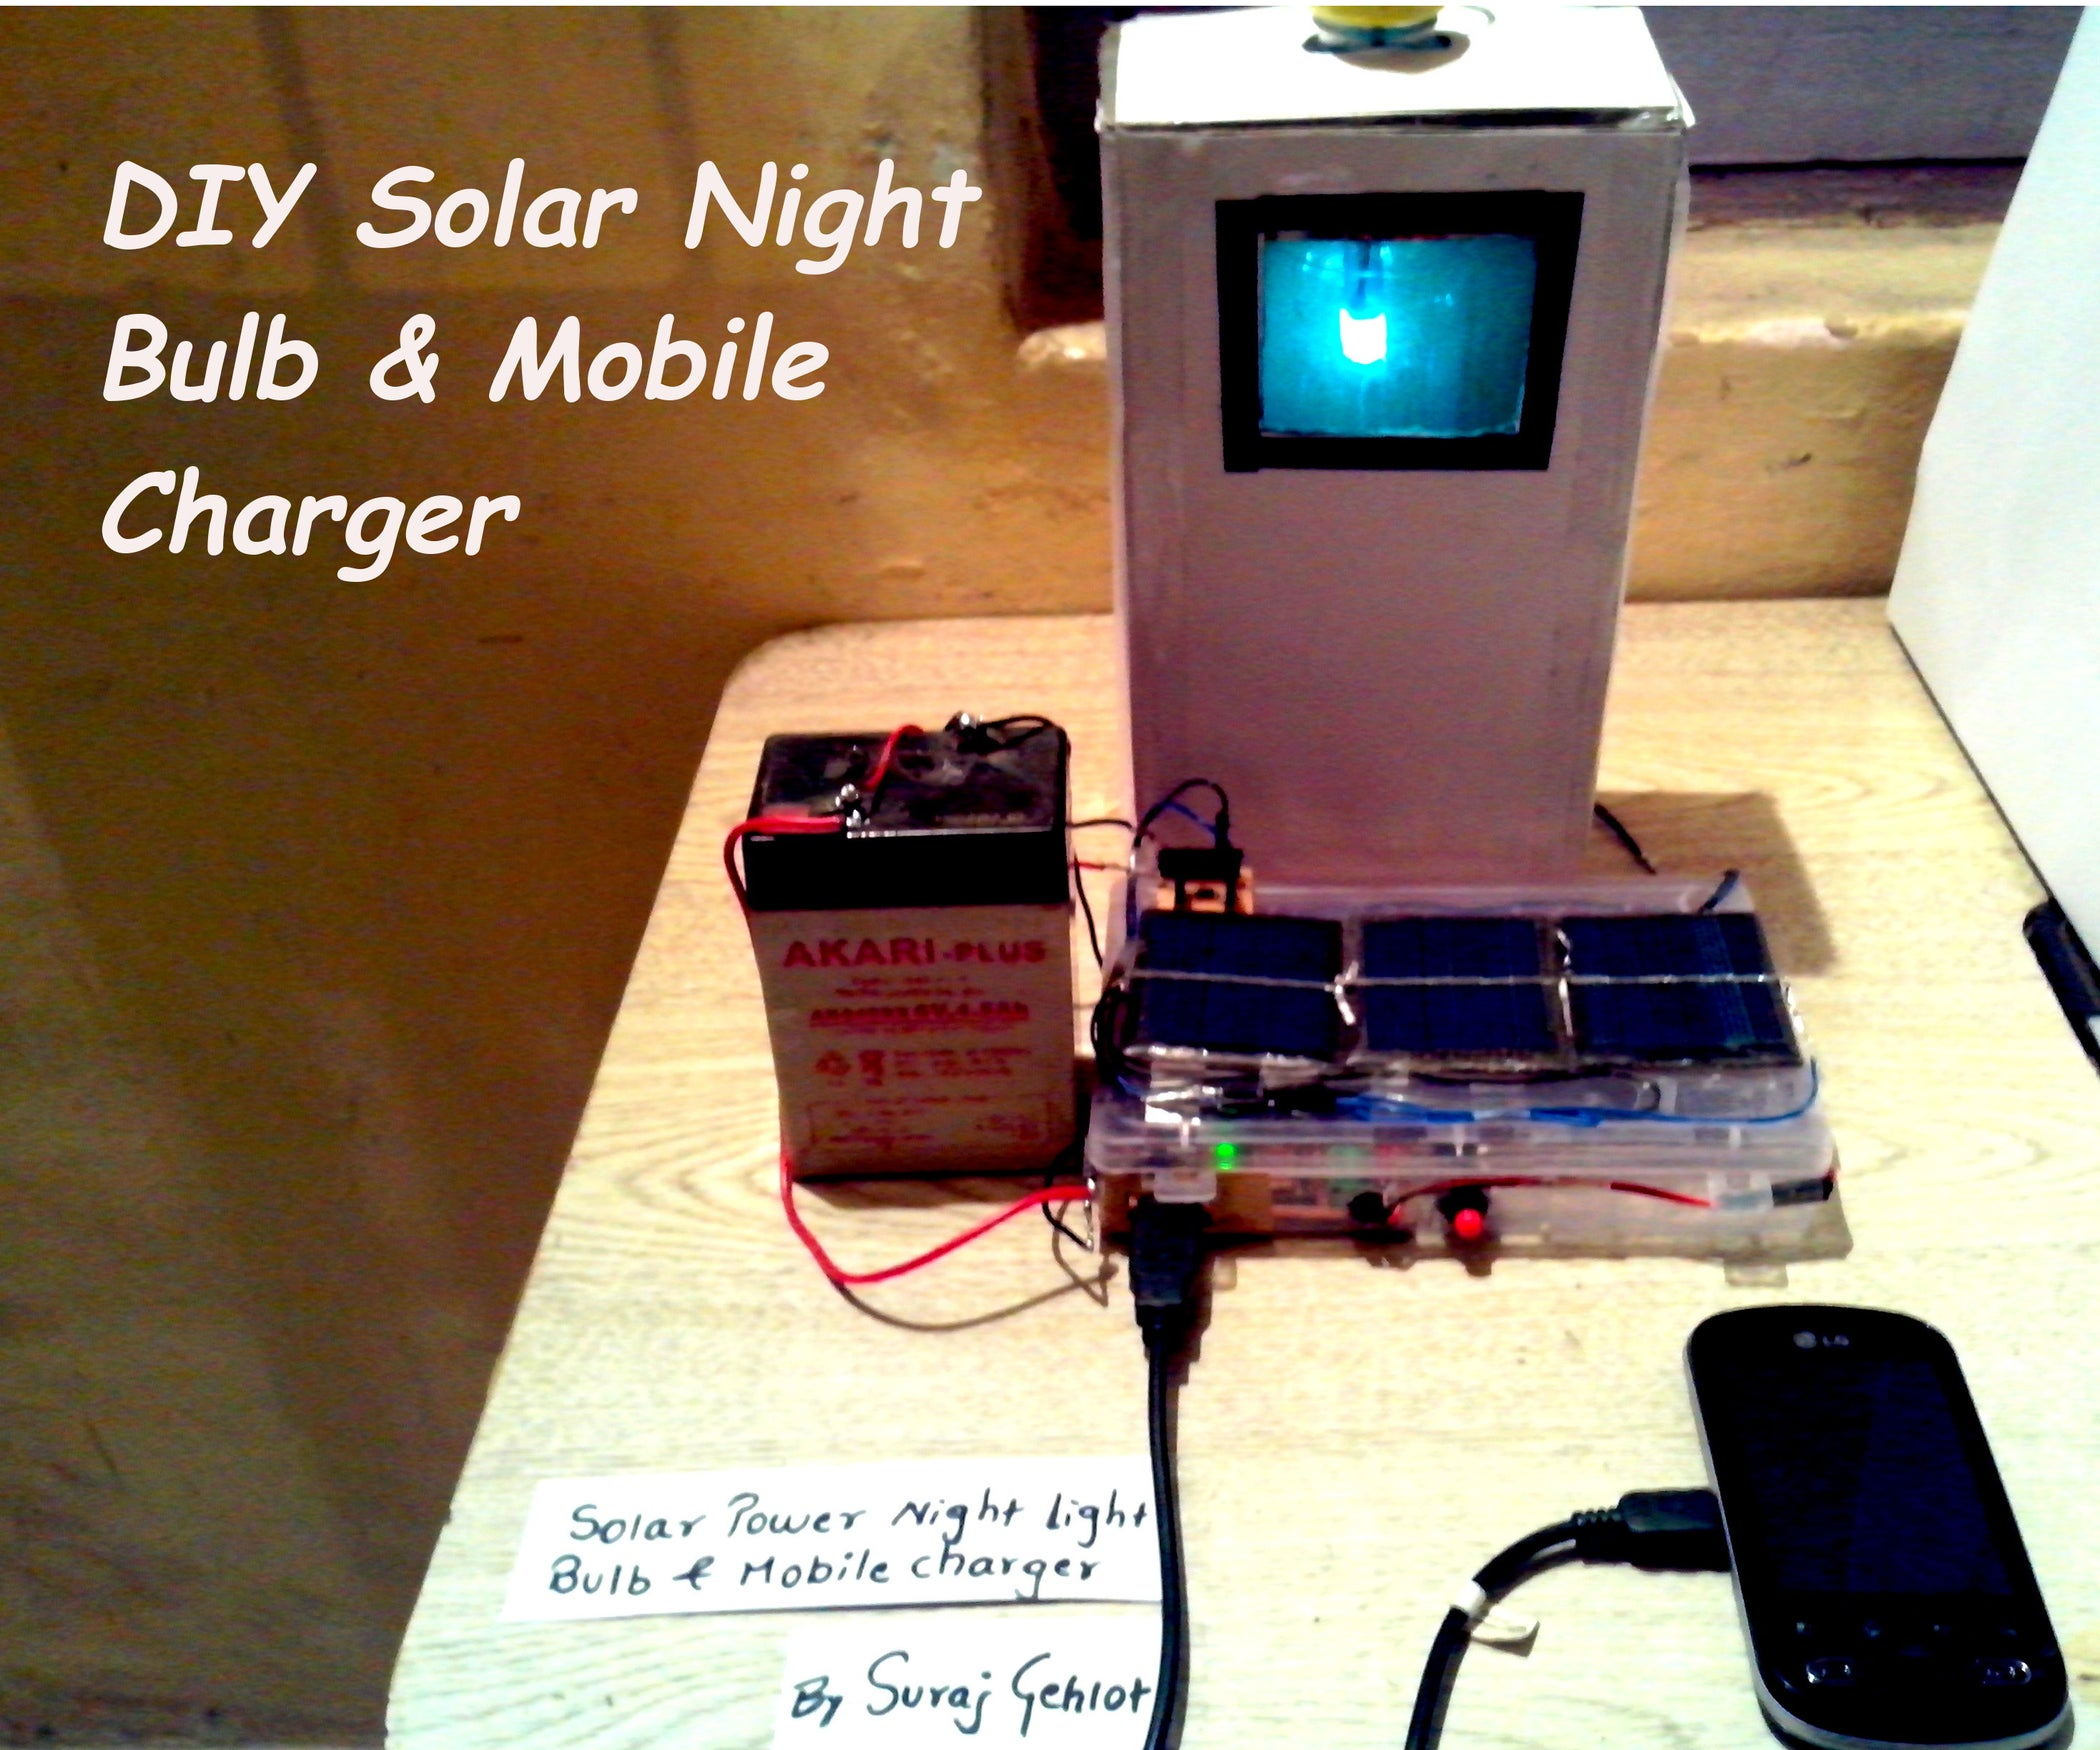 Diy Solar Bottle Bulb And Mobile Charger 11 Steps With Pictures Notes This Is A Simple Circuit That Uses